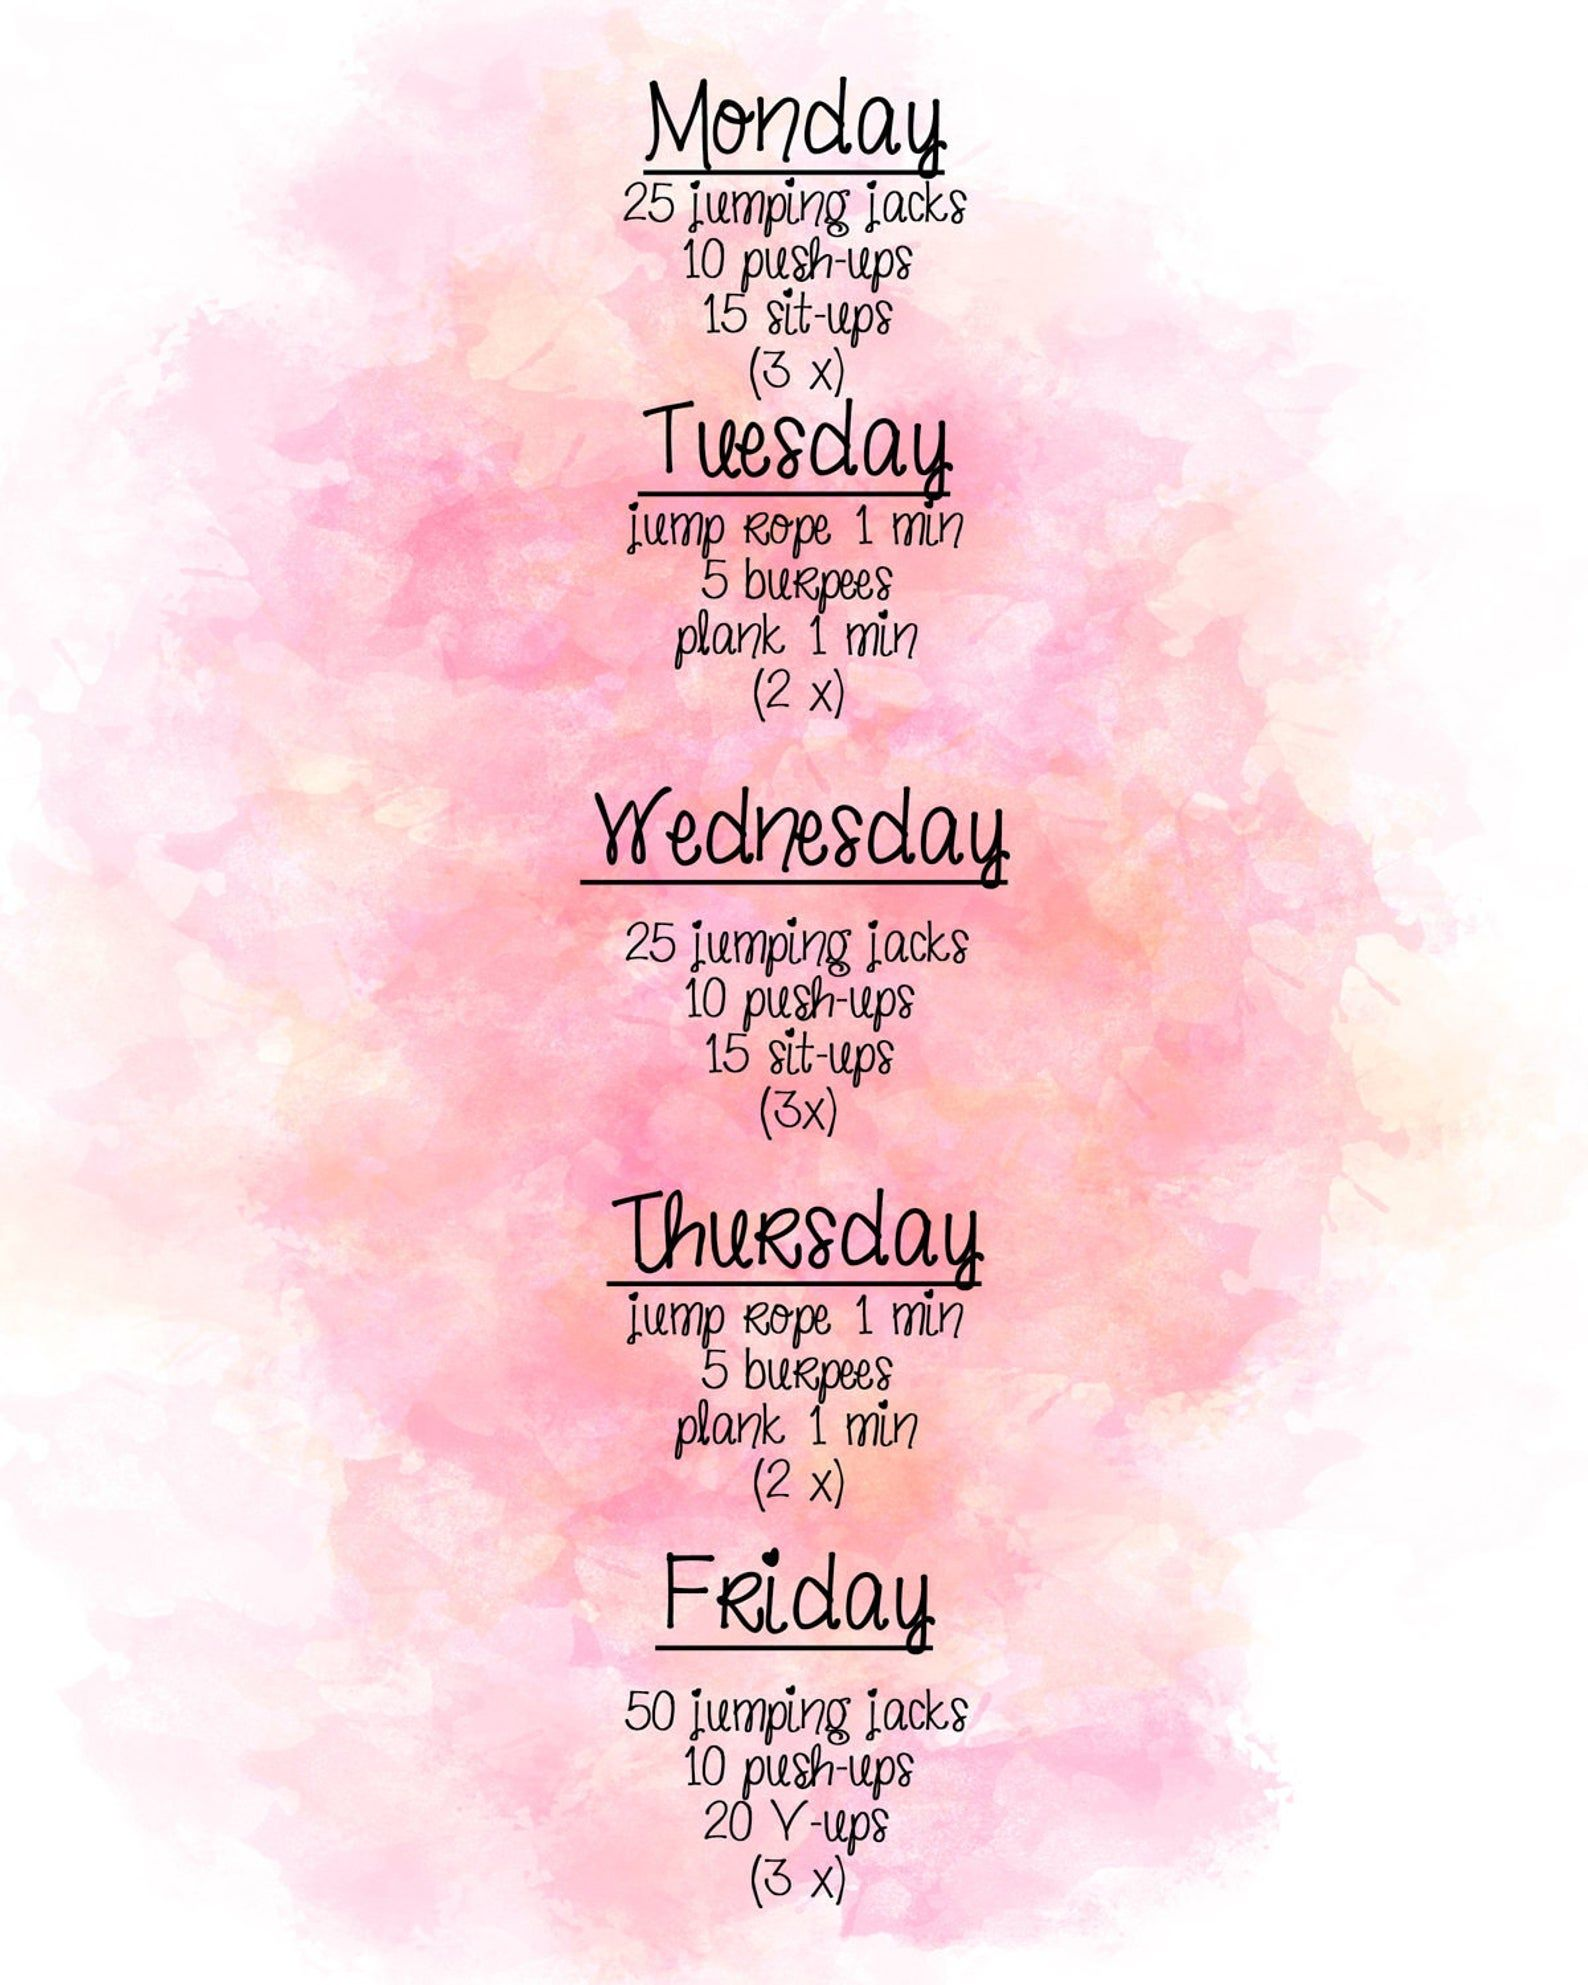 Simple weekly workout sheet